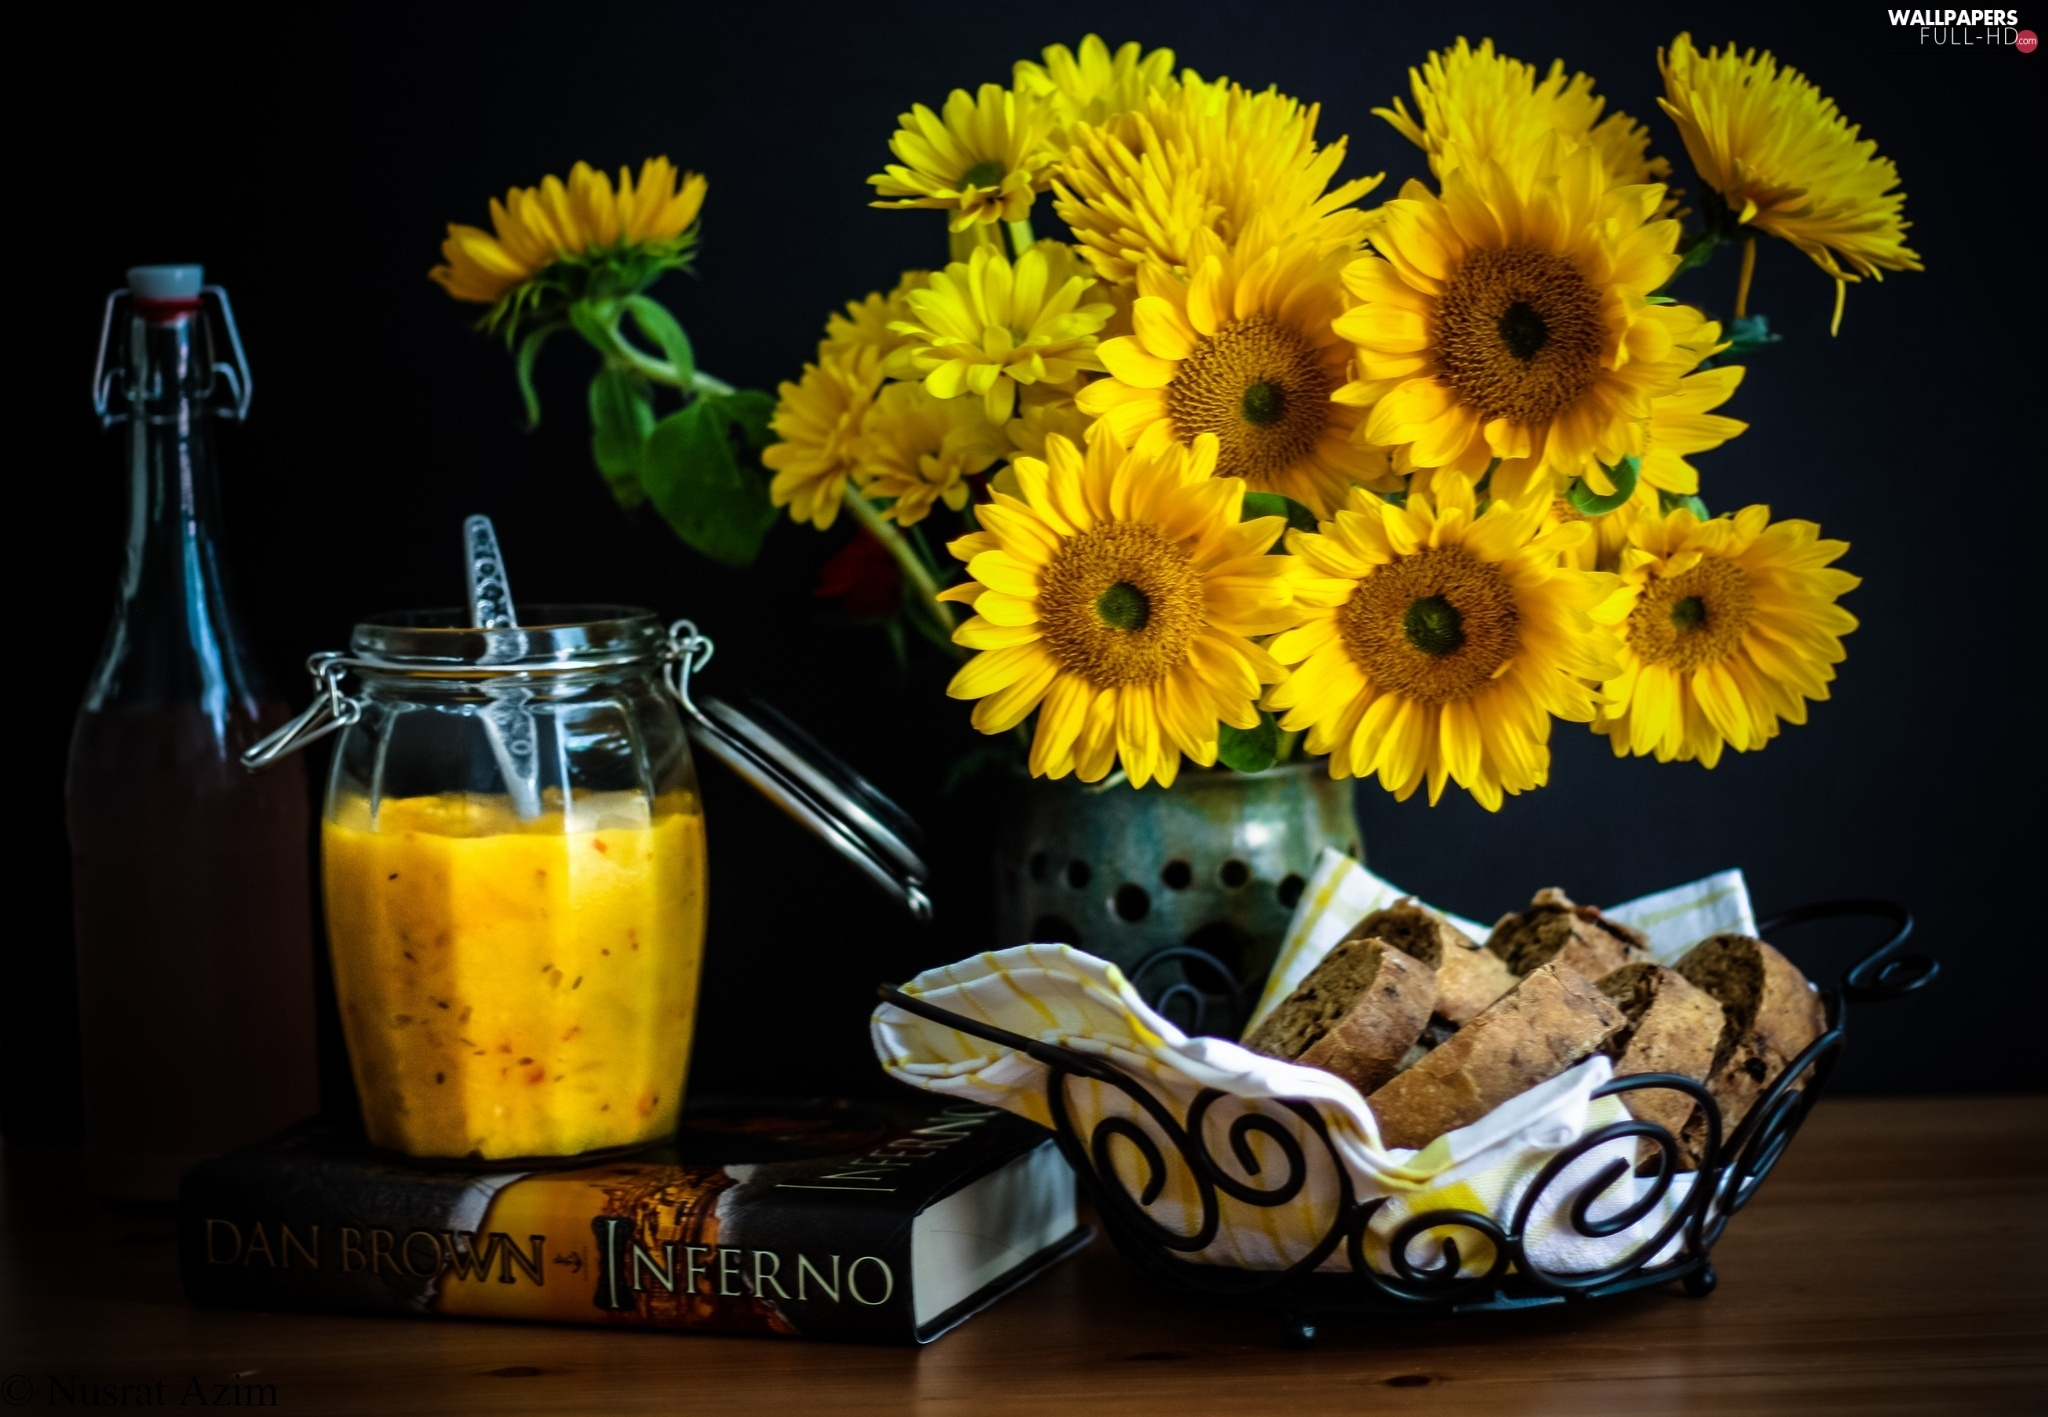 bread, Jam, Flowers, sunflowers